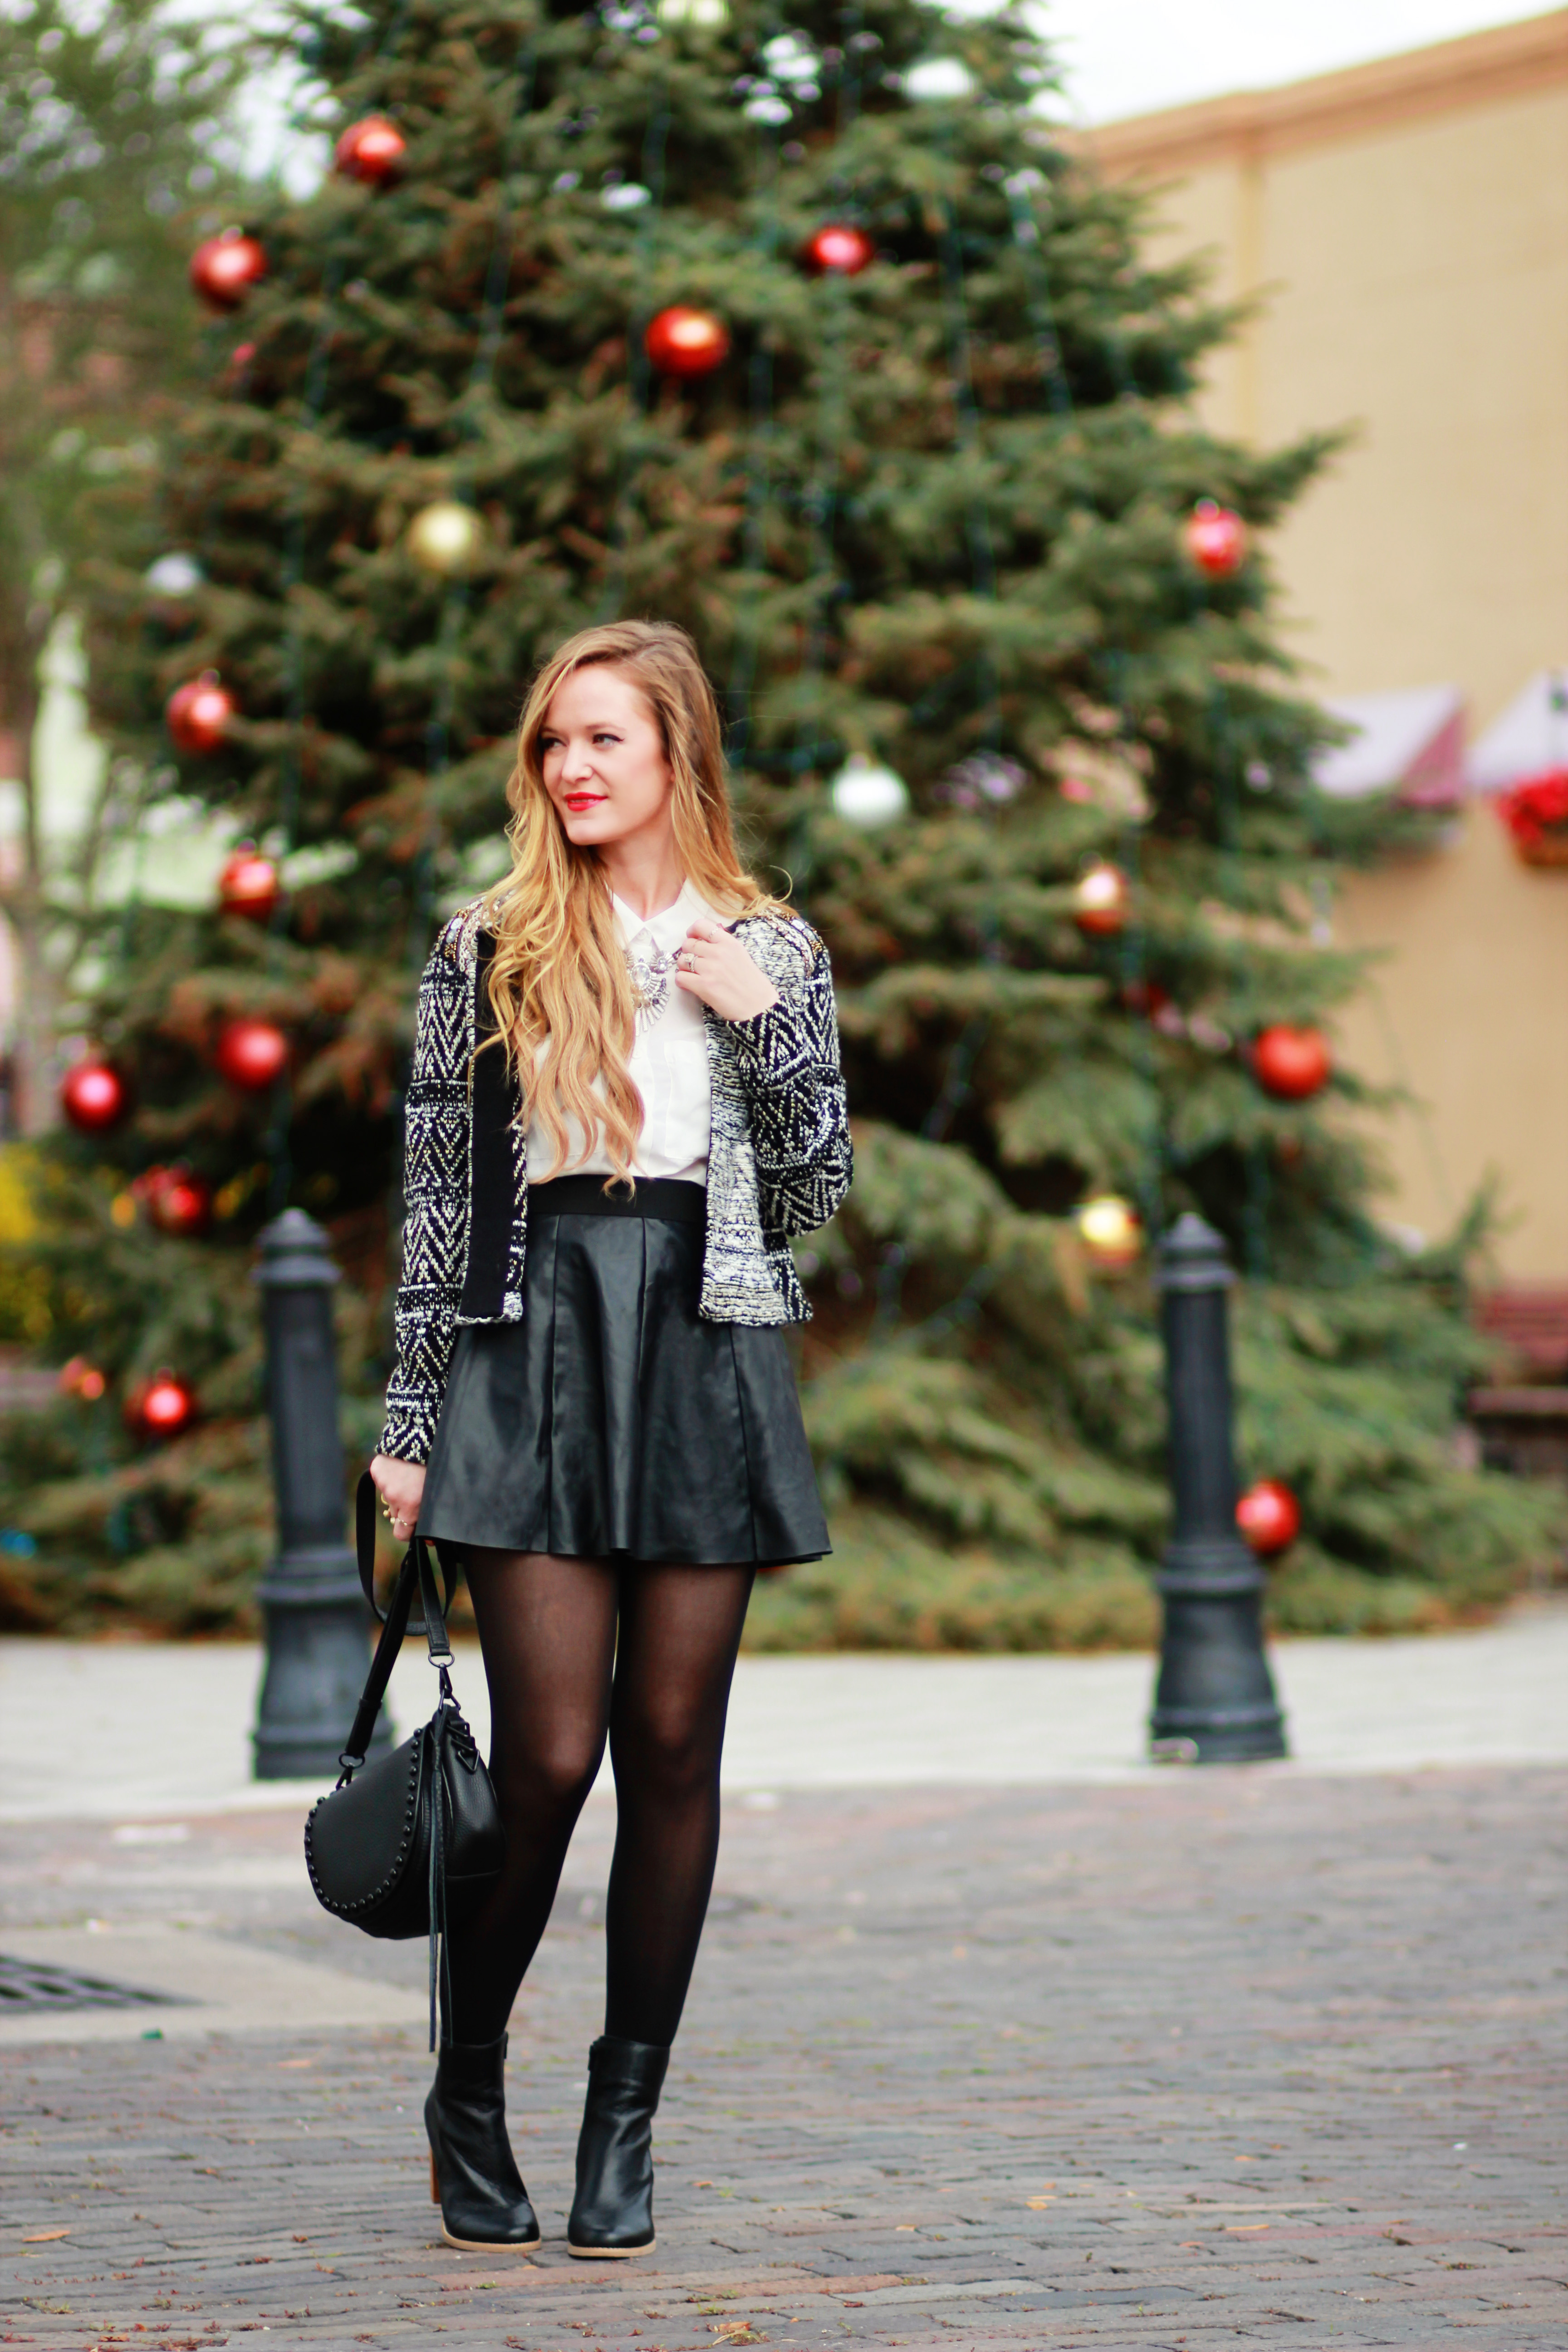 75d6b977f1b7 H&M Christmas sweater, leather skater skirt, Rebecca Minkoff saddle bag, Christmas  Day Outfit